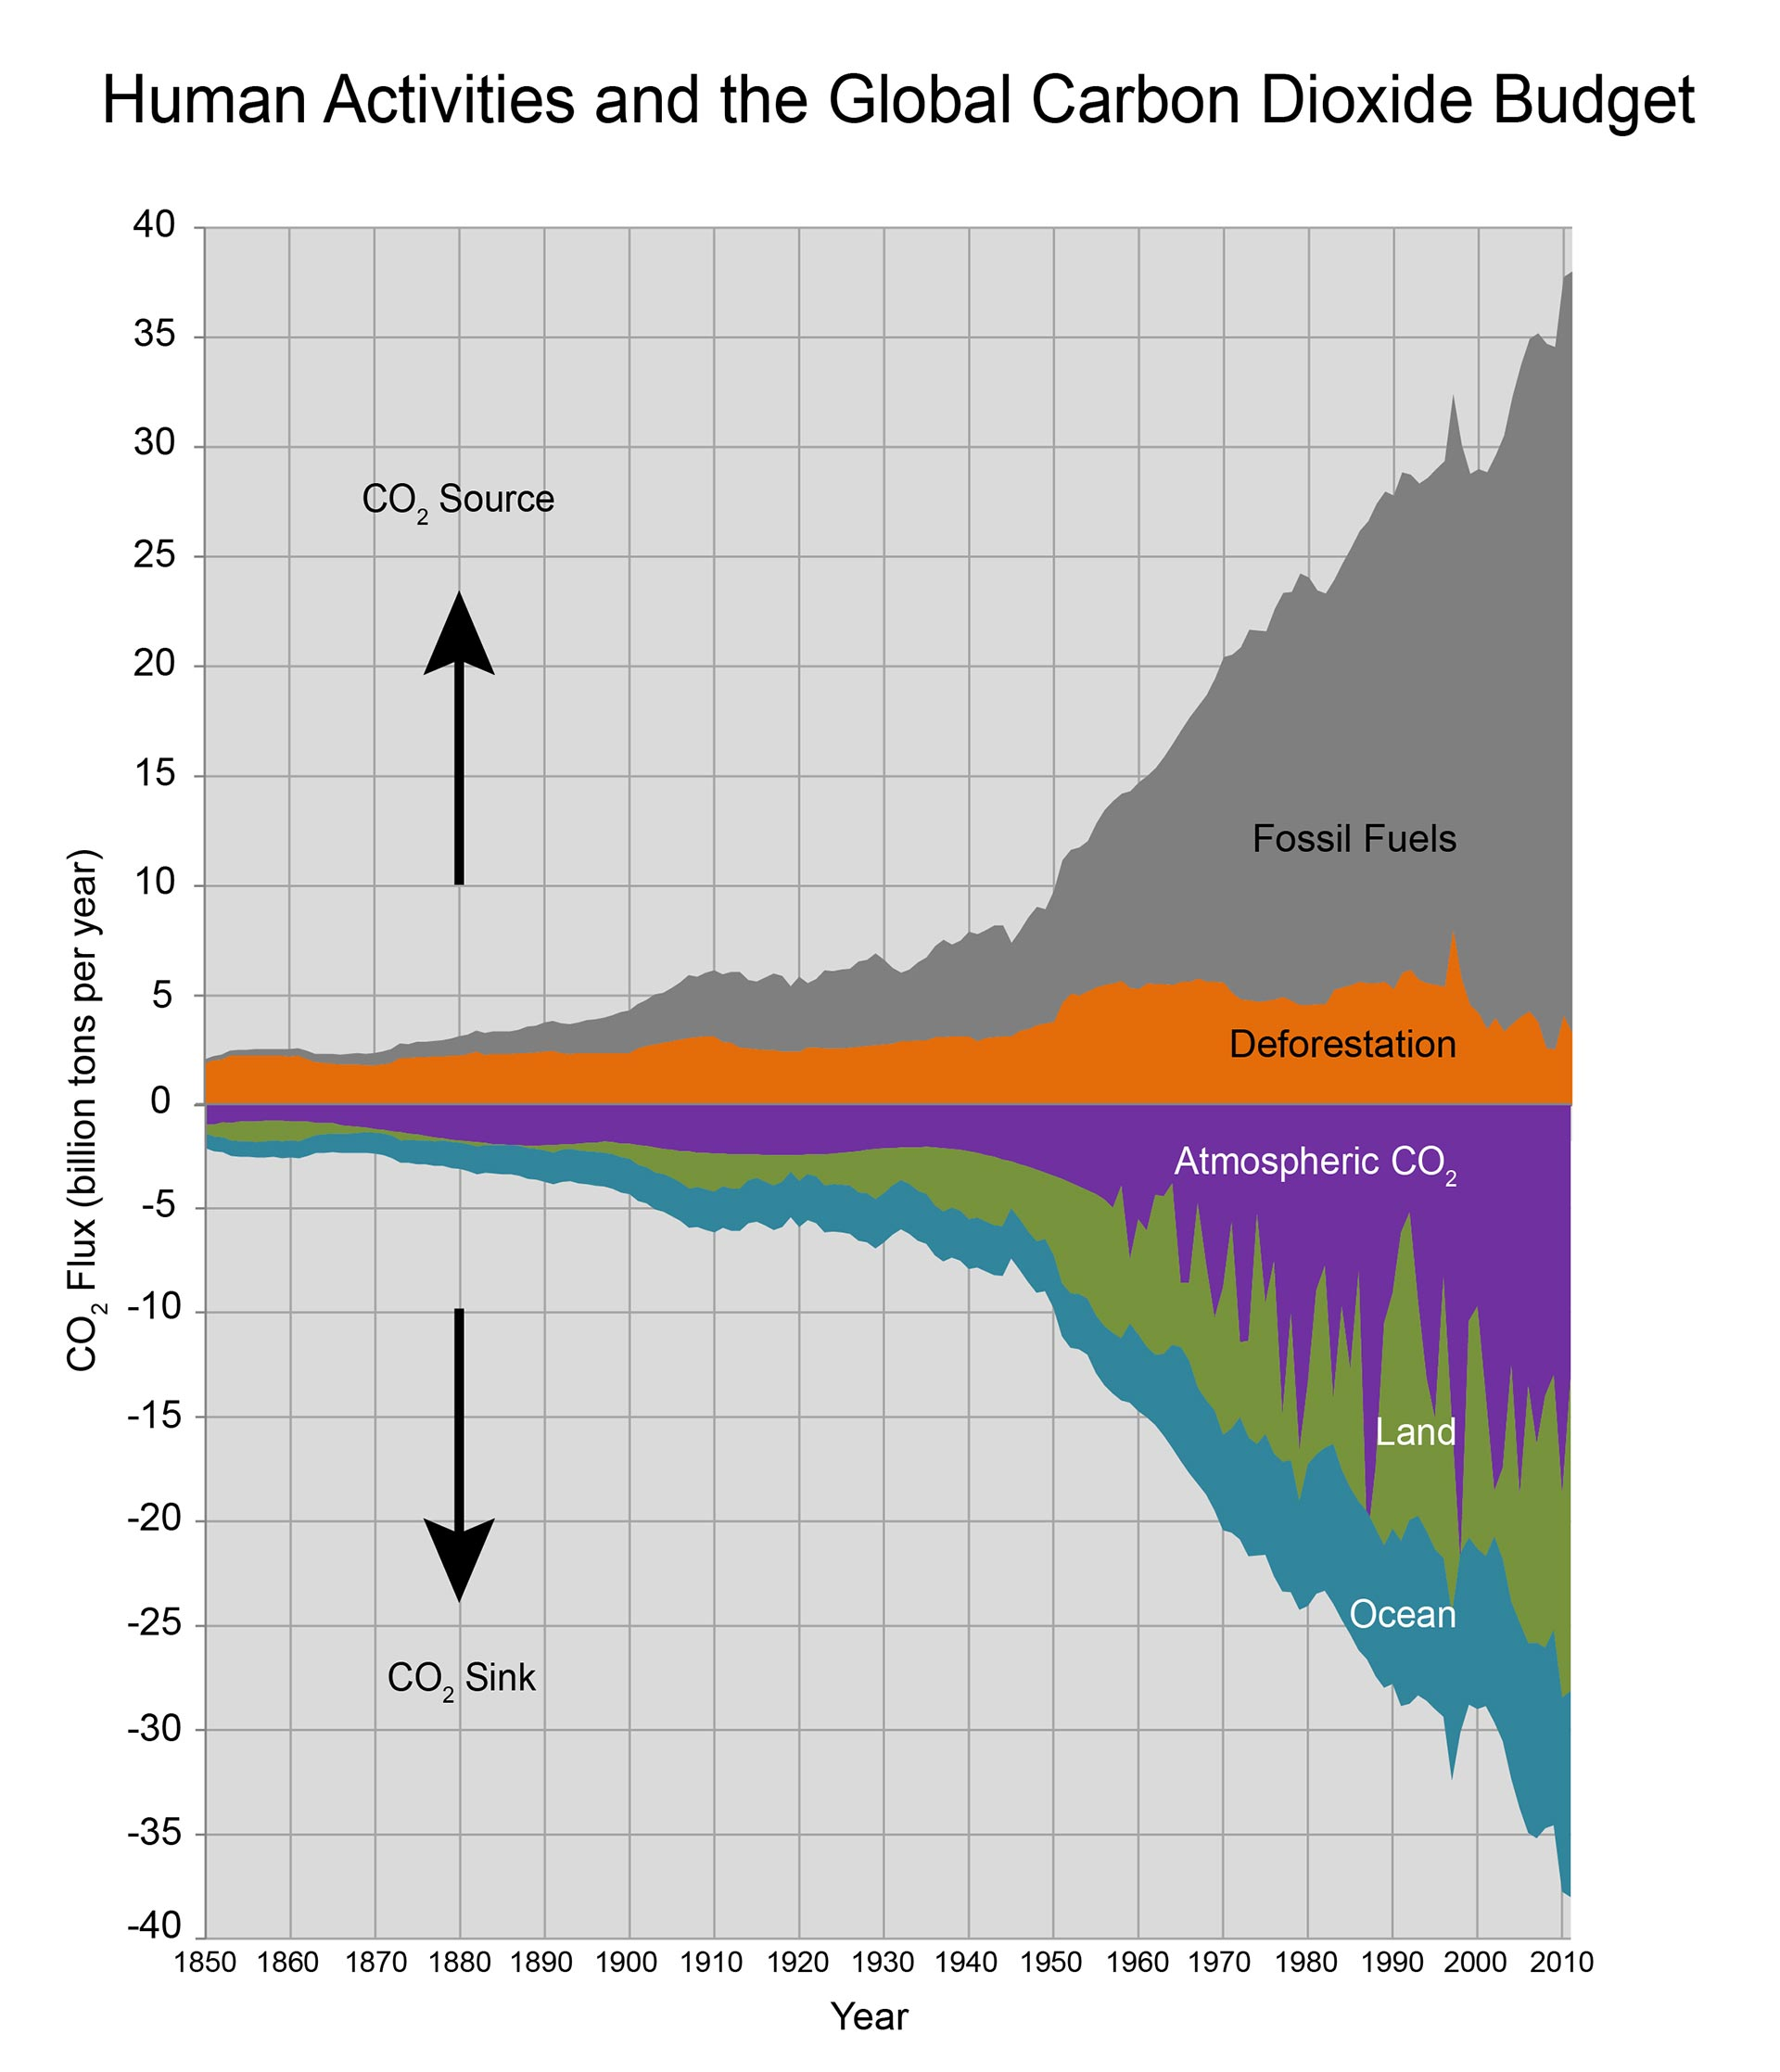 Figure 27.1: Human Activities and the Global Carbon Dioxide Budget ...